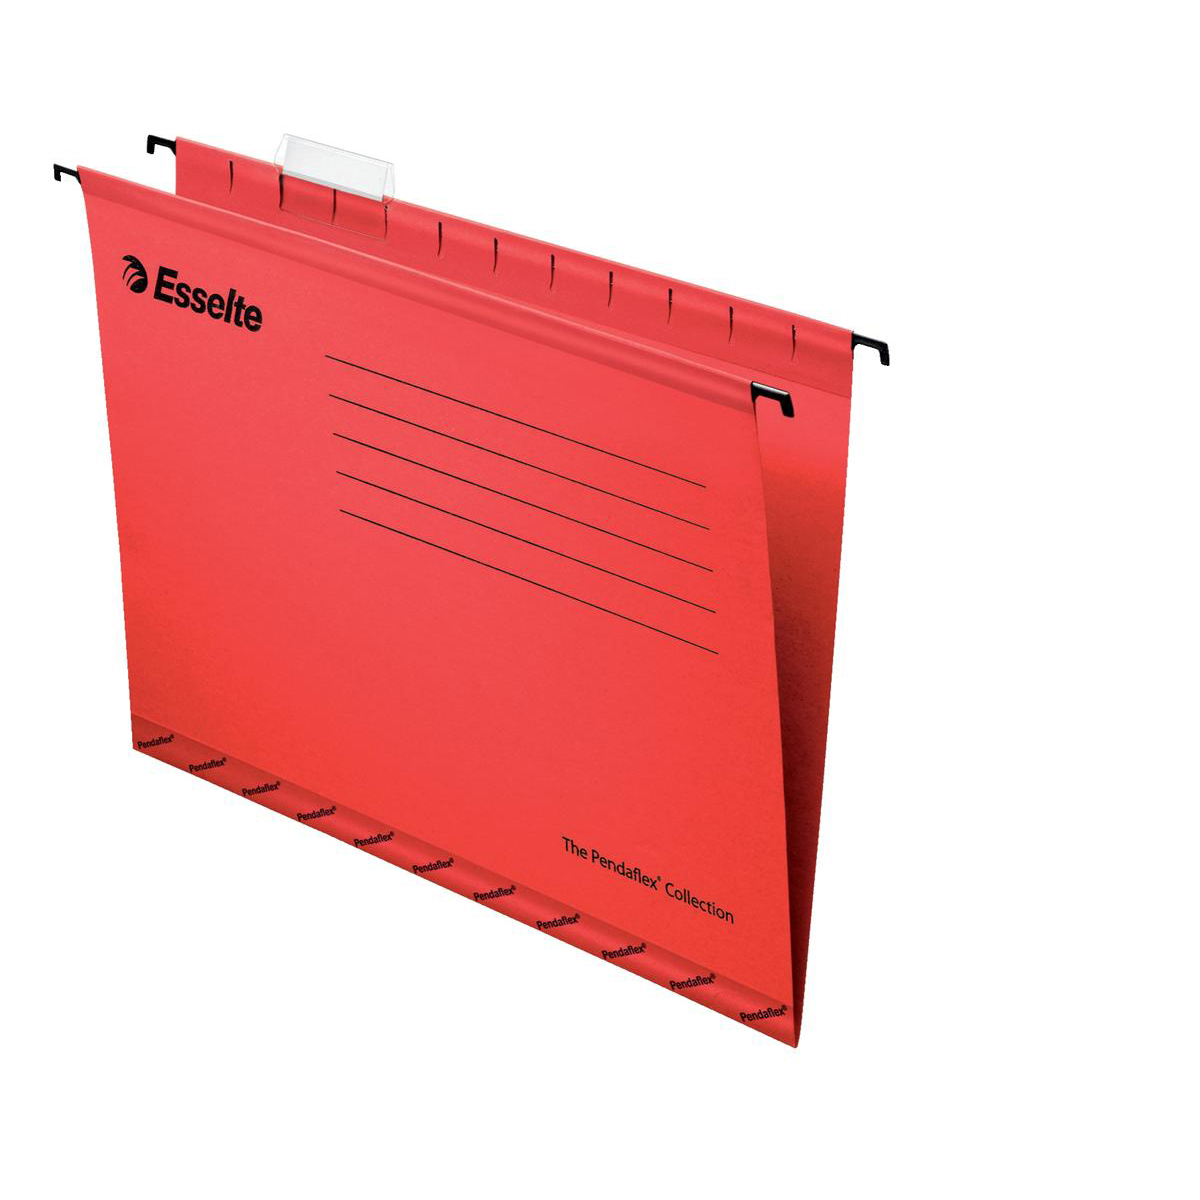 Esselte Classic Reinforced Suspension File Manilla 15mm V-base 210gsm Foolscap Red Ref 90336 Pack 25